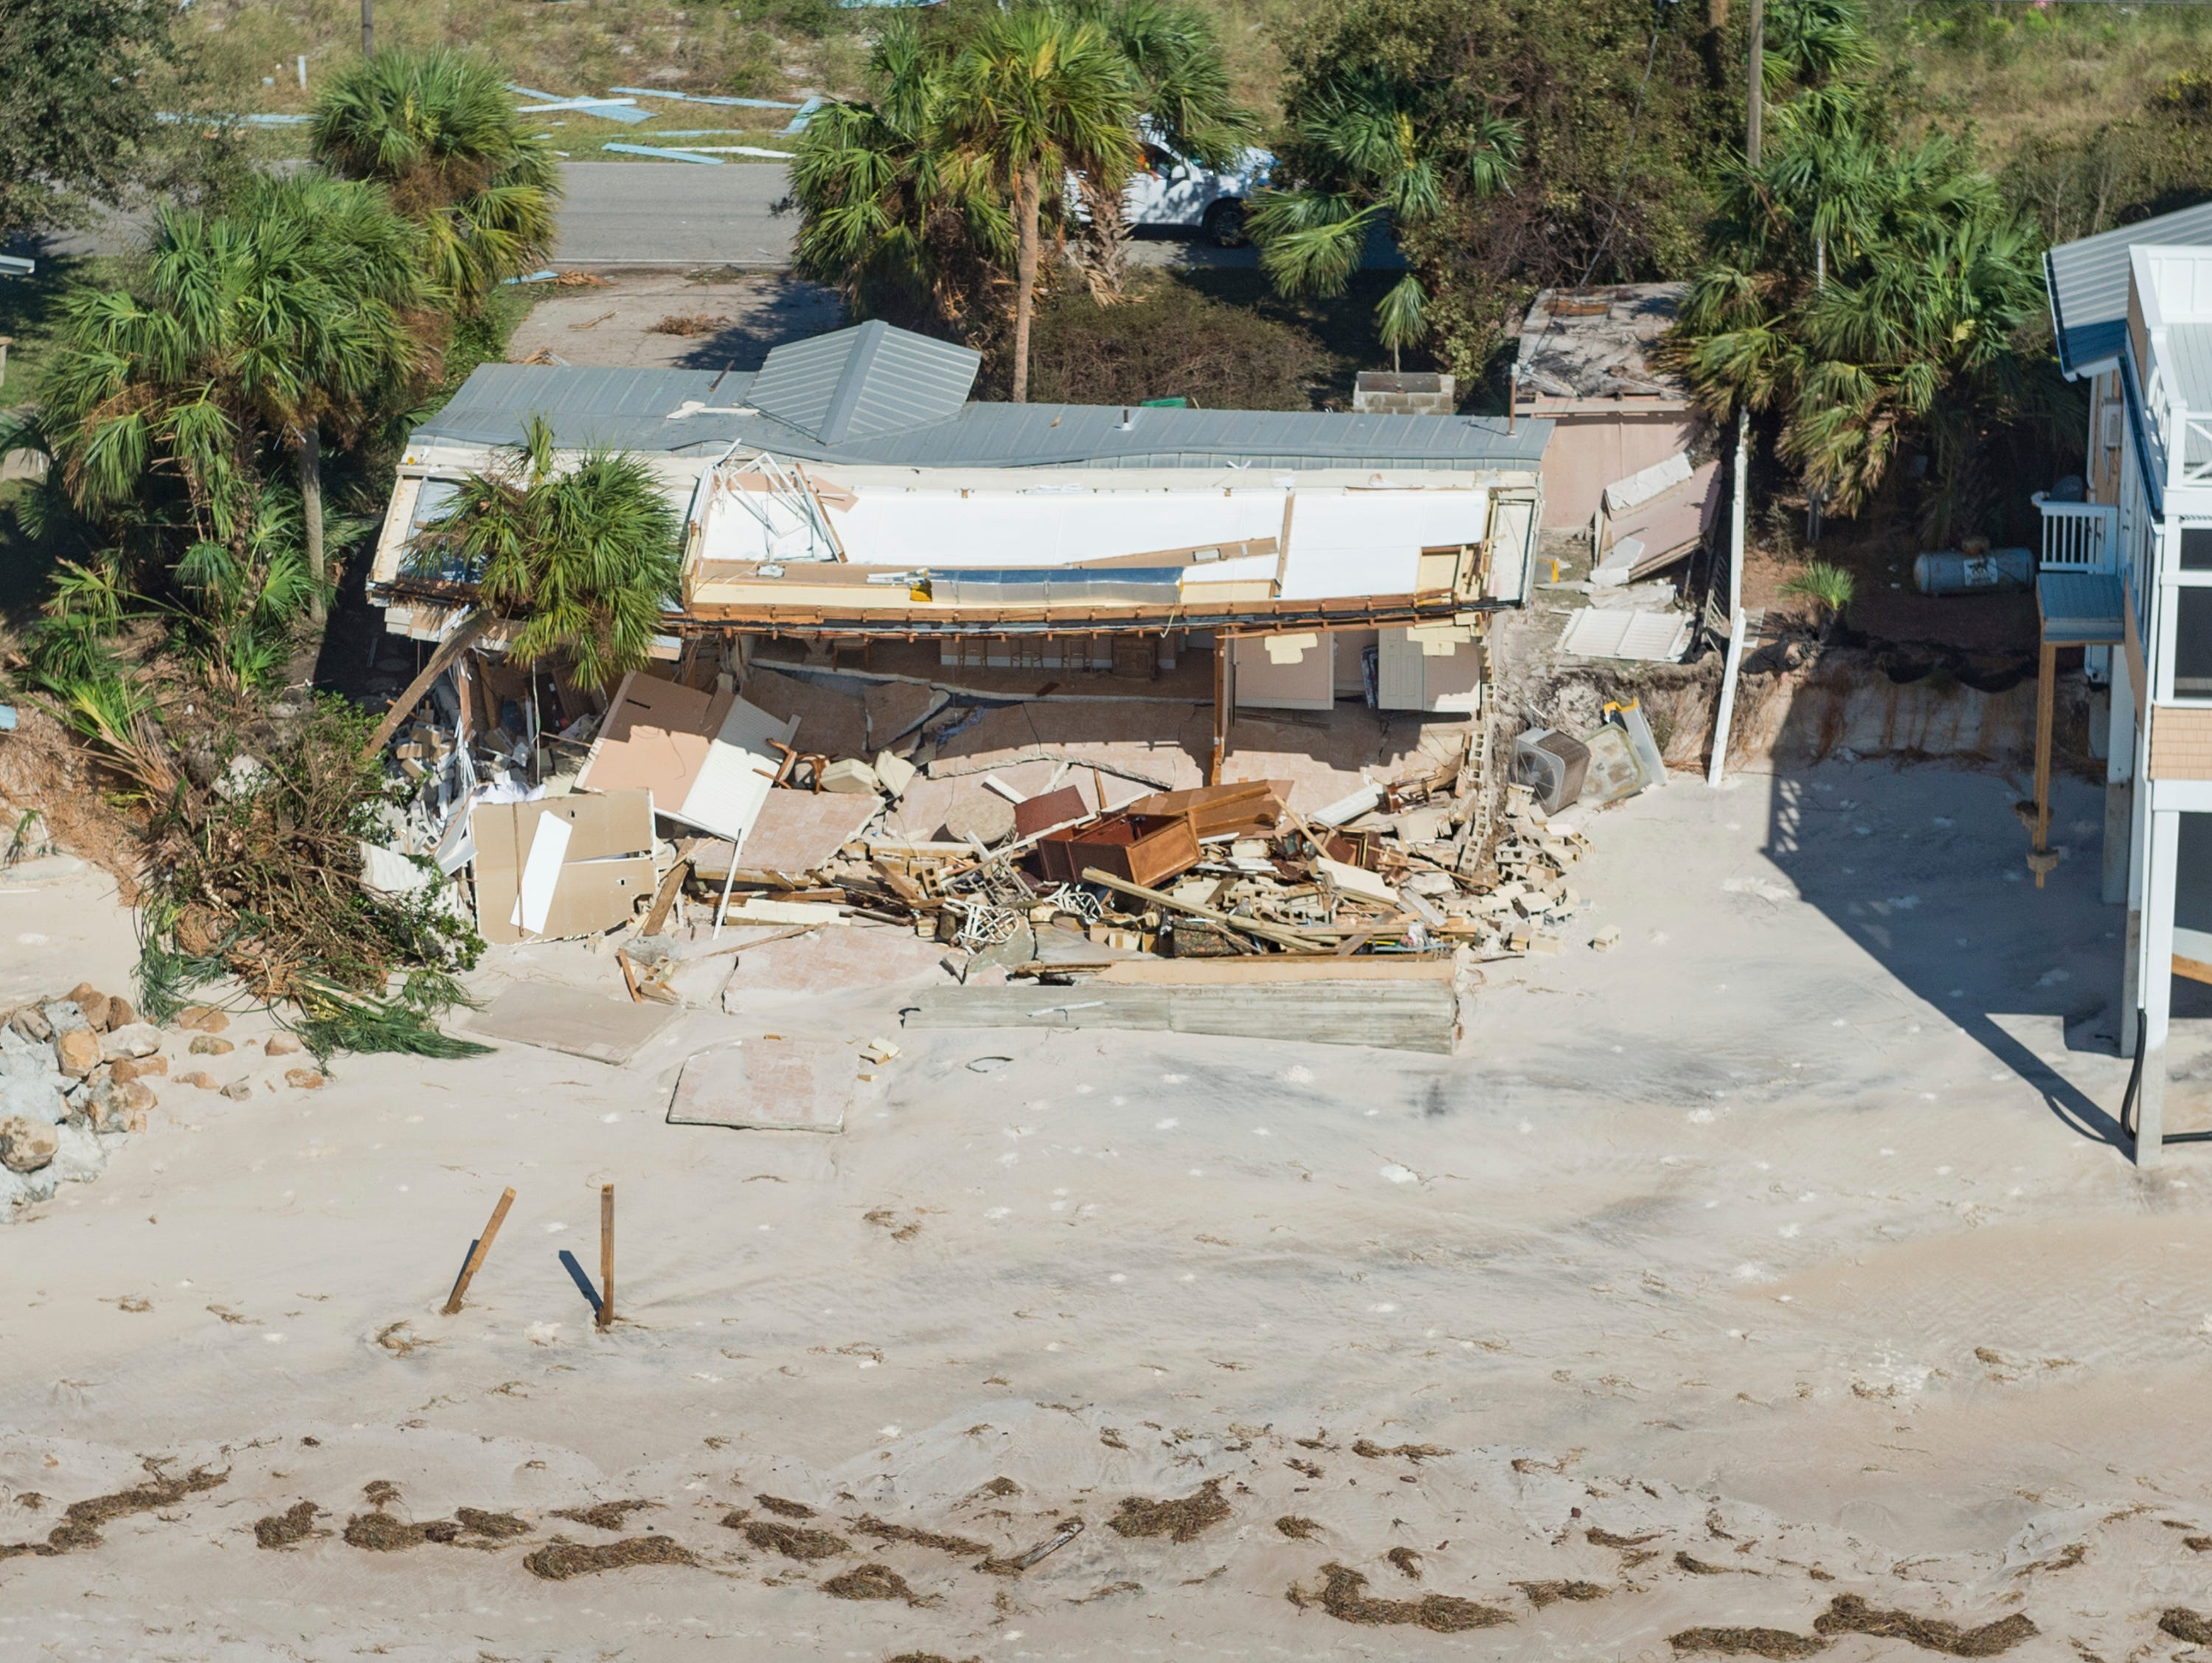 This is the damage and aftermath of Hurricane Michael on St. Teresa Beach, Fla., Oct. 11, 2018.